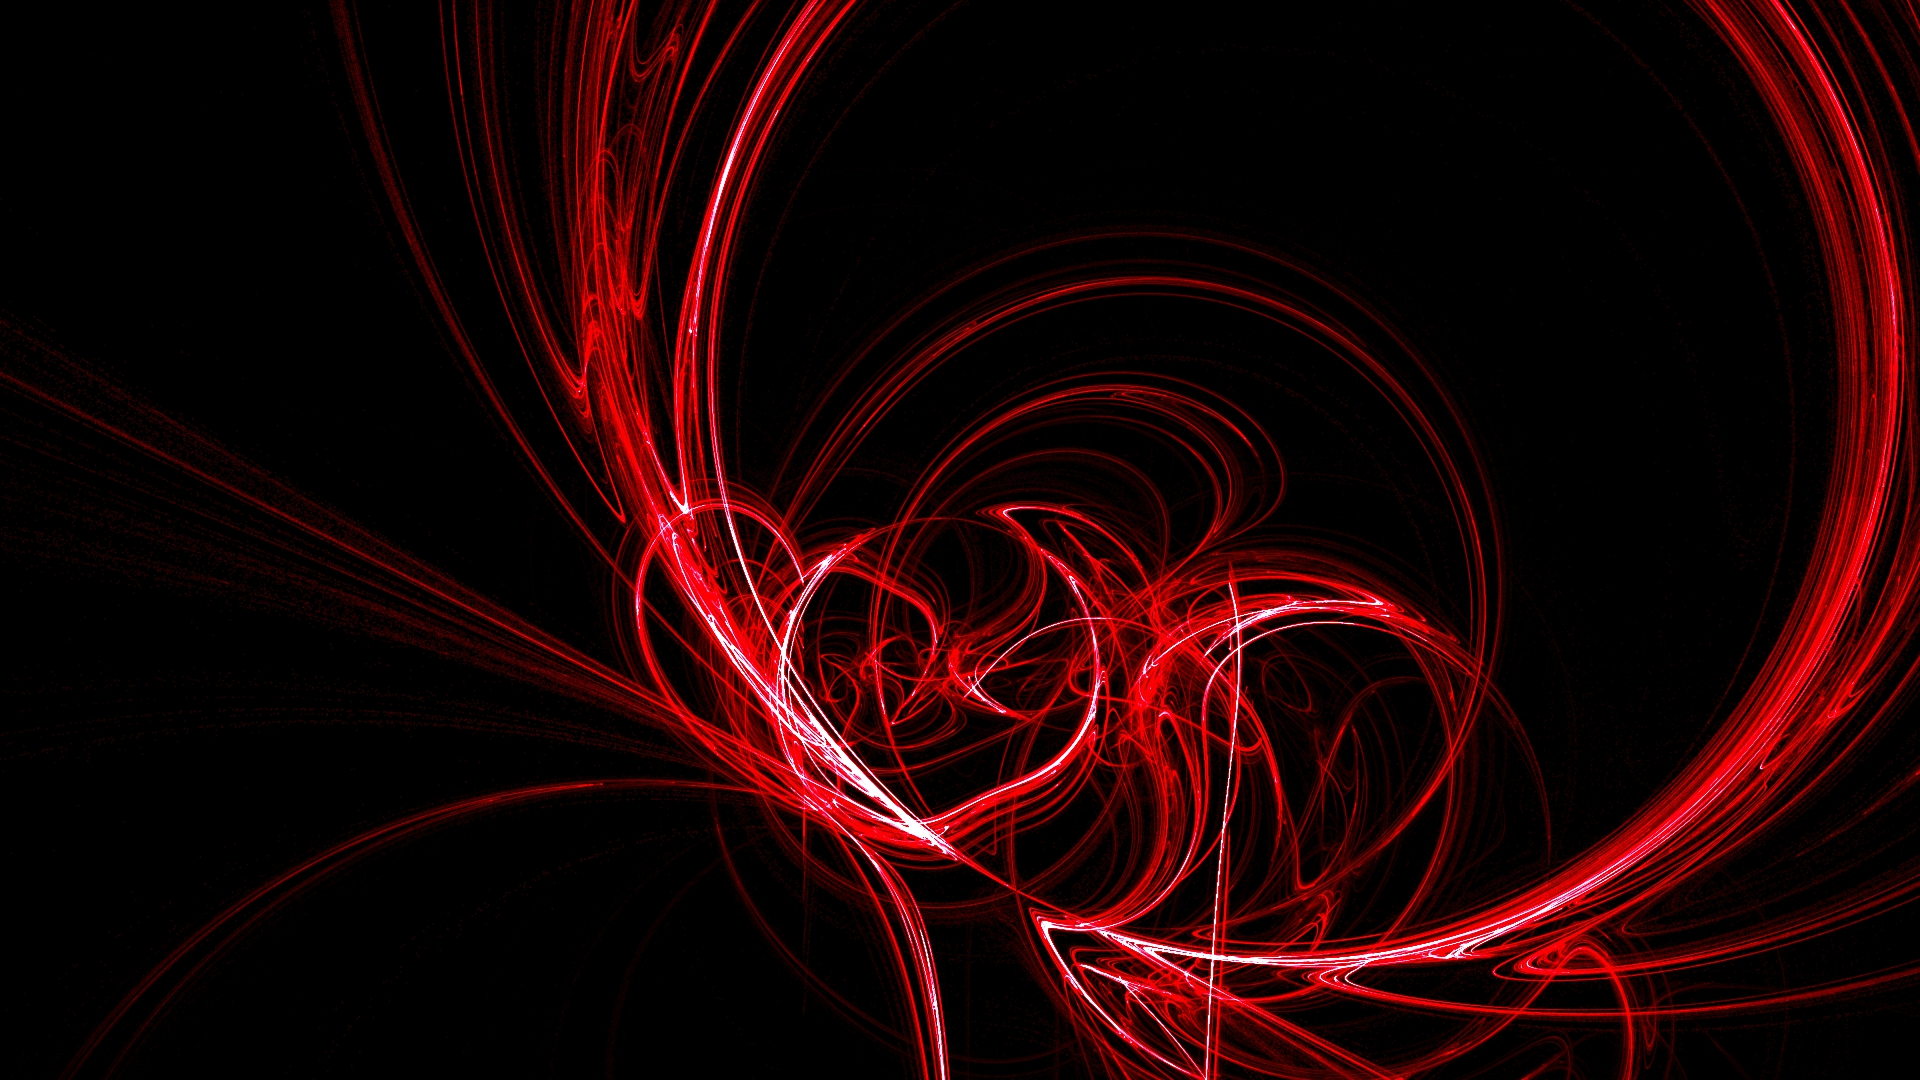 186 Red HD Wallpapers   Backgrounds - Wallpaper Abyss - Page 3